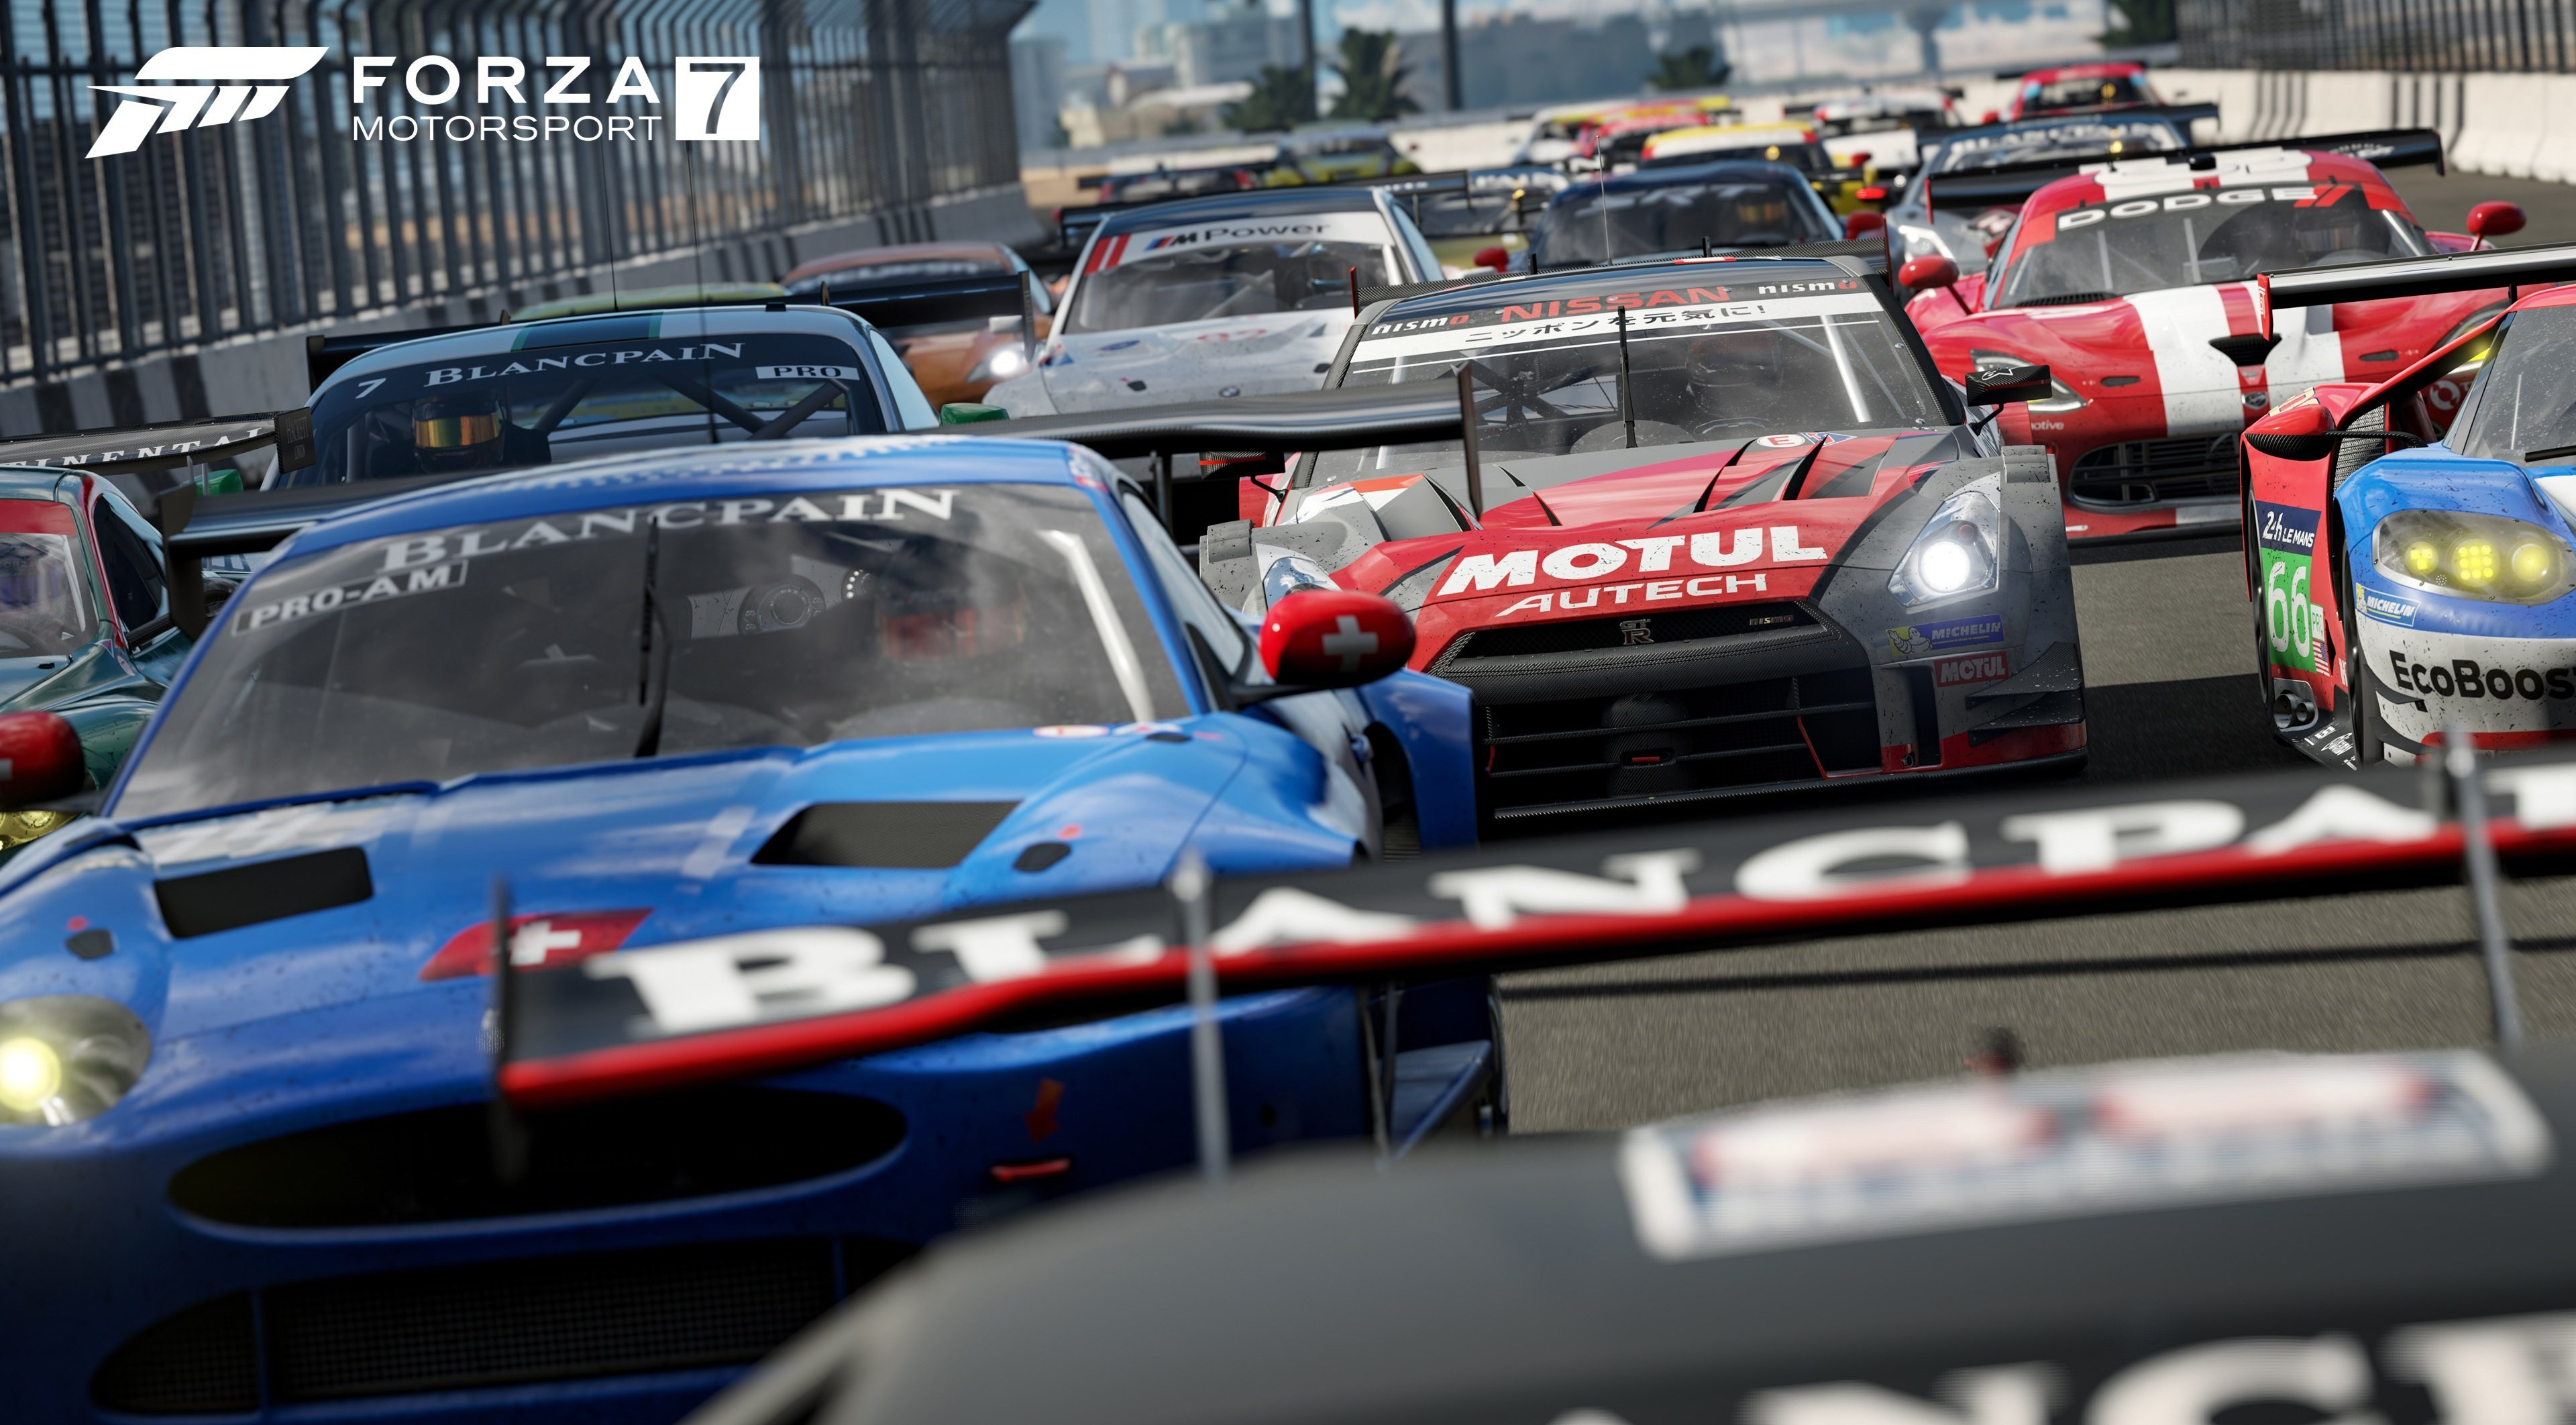 Forza Motorsport 7 Wallpapers Posted By Christopher Johnson